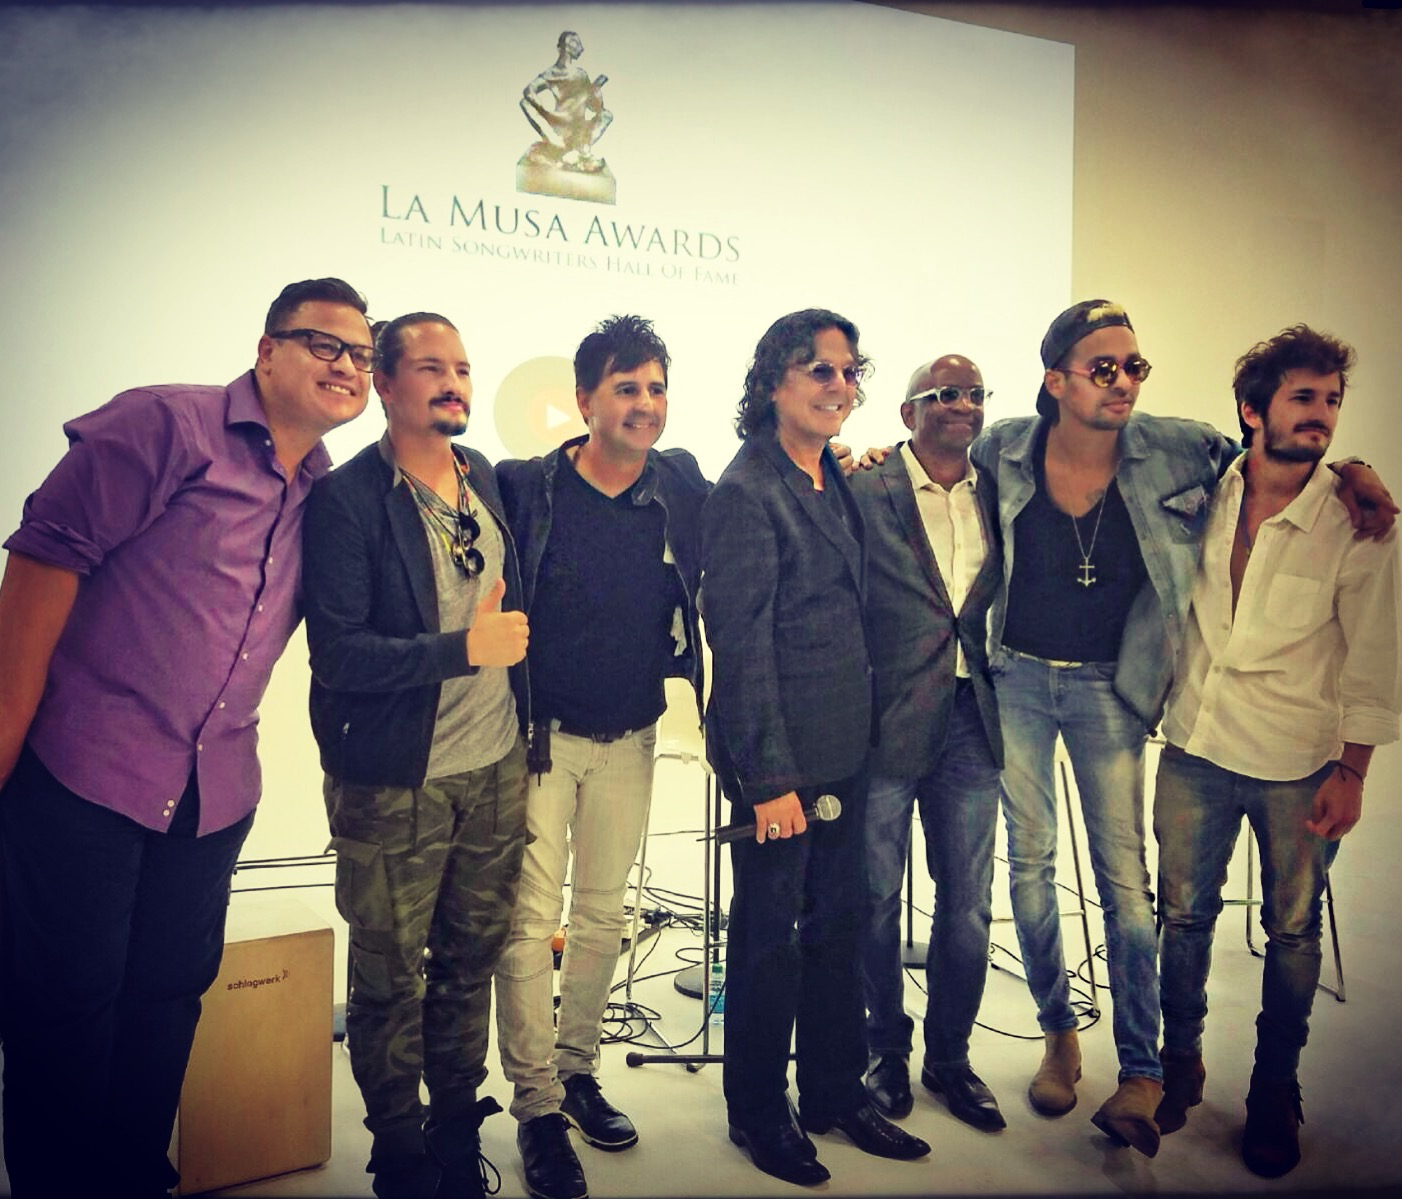 La Musa Awards Master Class: Top Music Producers